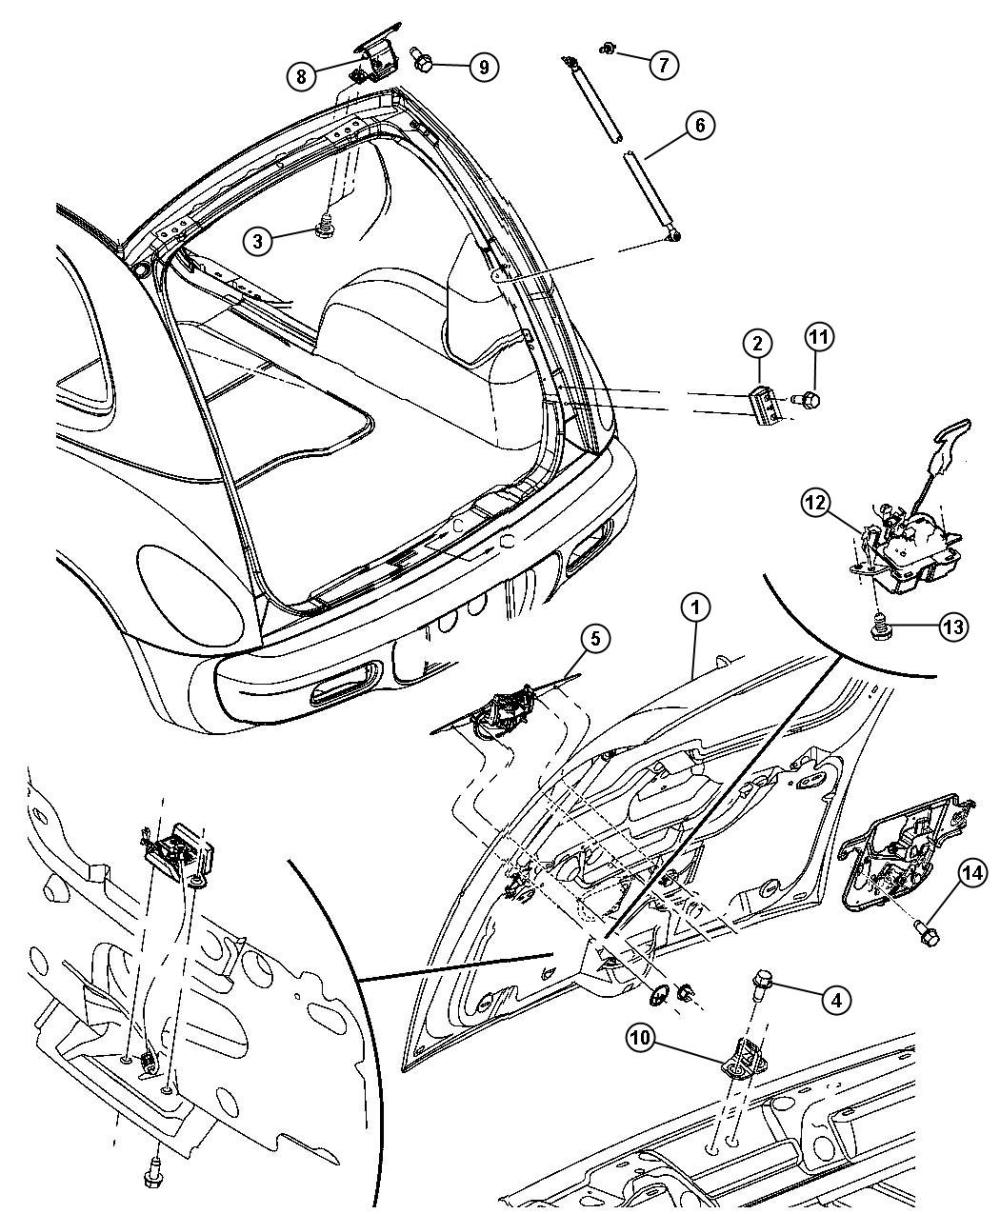 medium resolution of i 06 chrysler pacifica fuse box location besides maxresdefault furthermore lube further also in addition